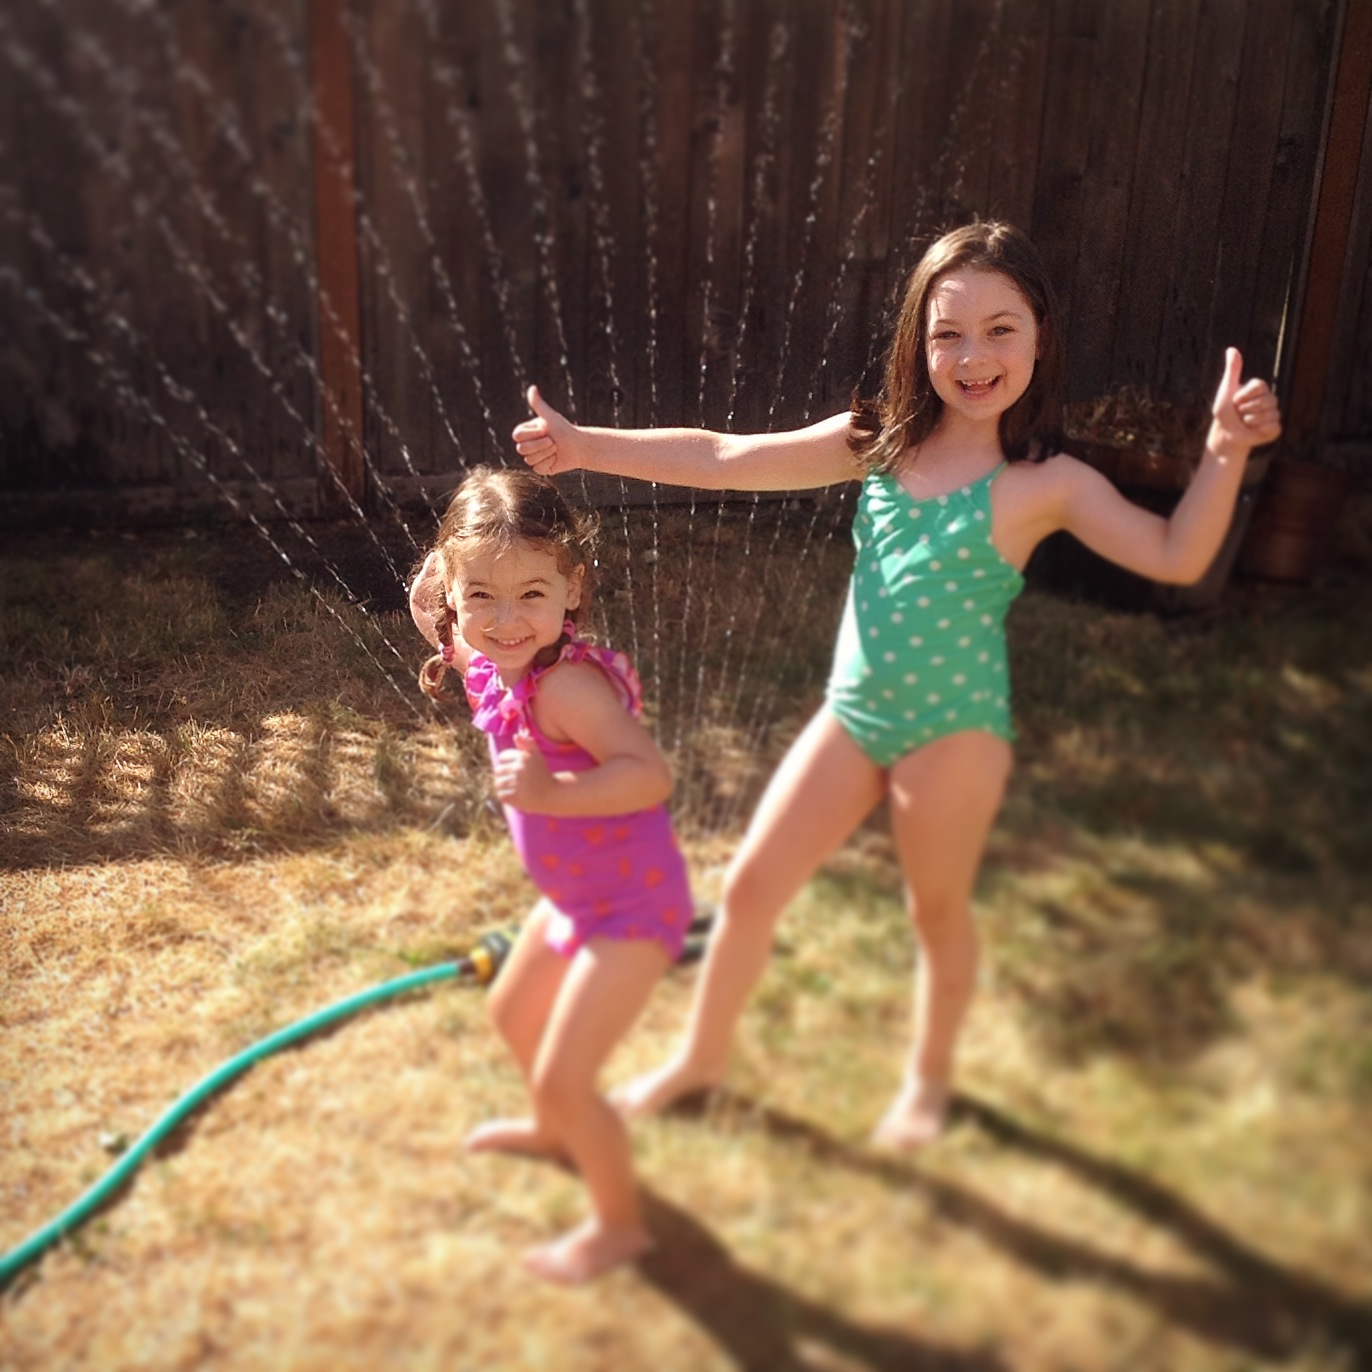 First time in sprinkler || VeryShannon.com